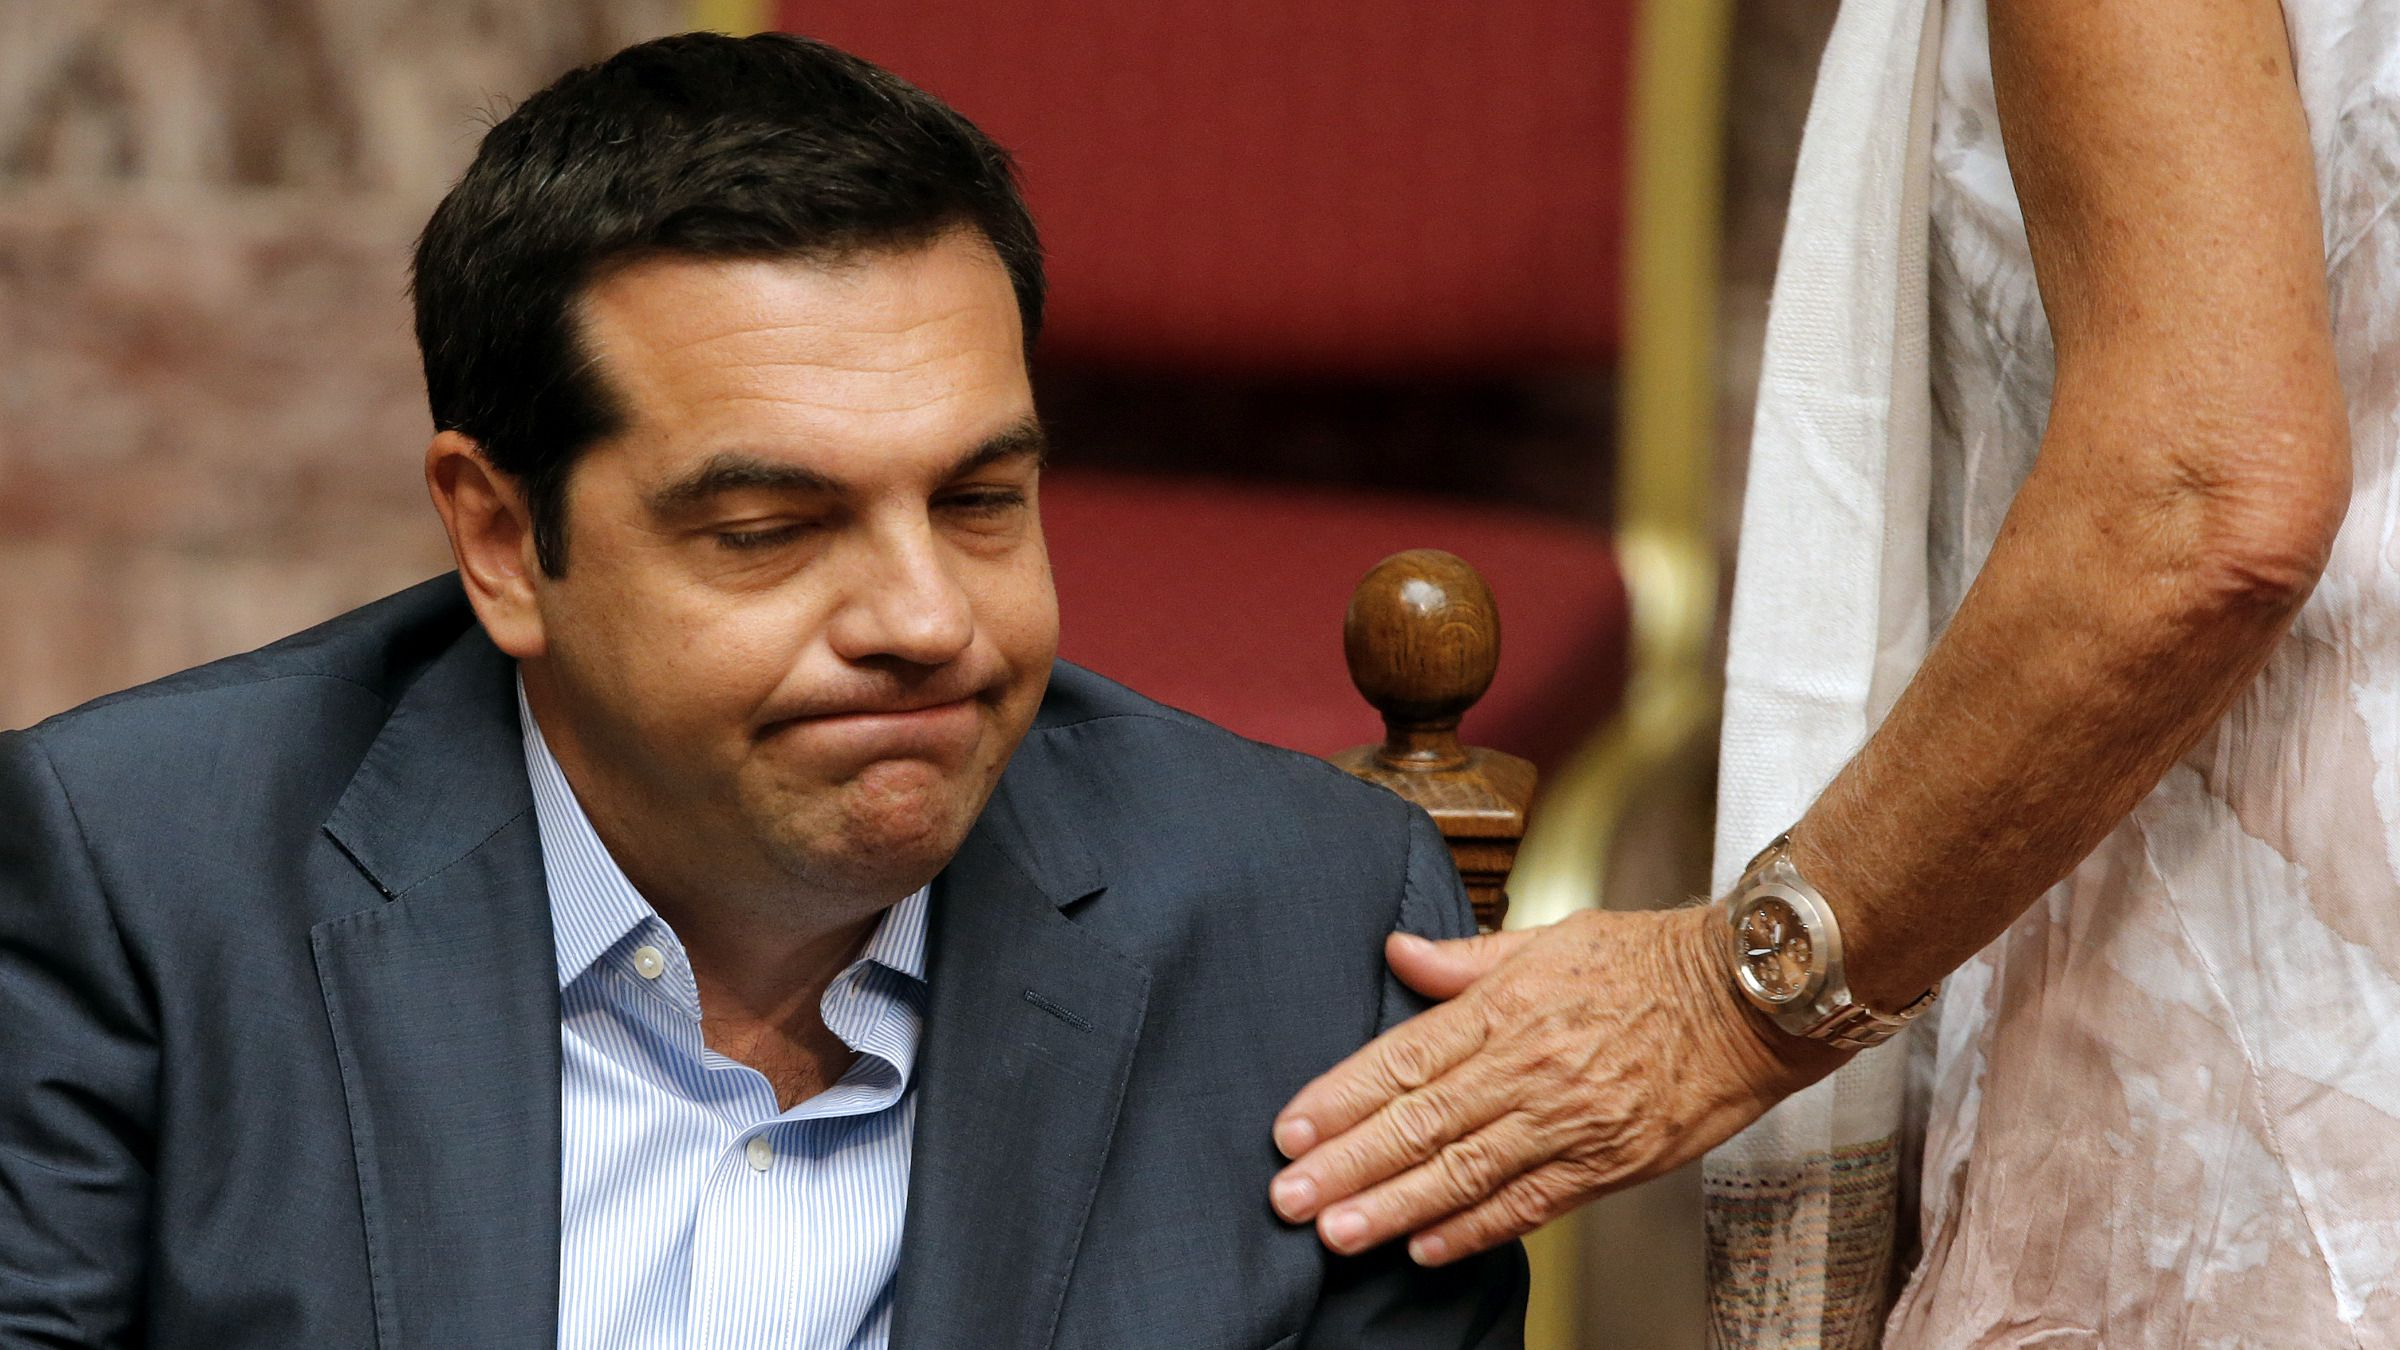 Greek Prime Minister Alexis Tsipras reacts as he attends a parliamentary session in Athens, Greece, August 14, 2015. Tsipras confronted a widening rebellion within his leftist Syriza party as parliament voted to approve the country's third financial rescue by foreign creditors in five years.